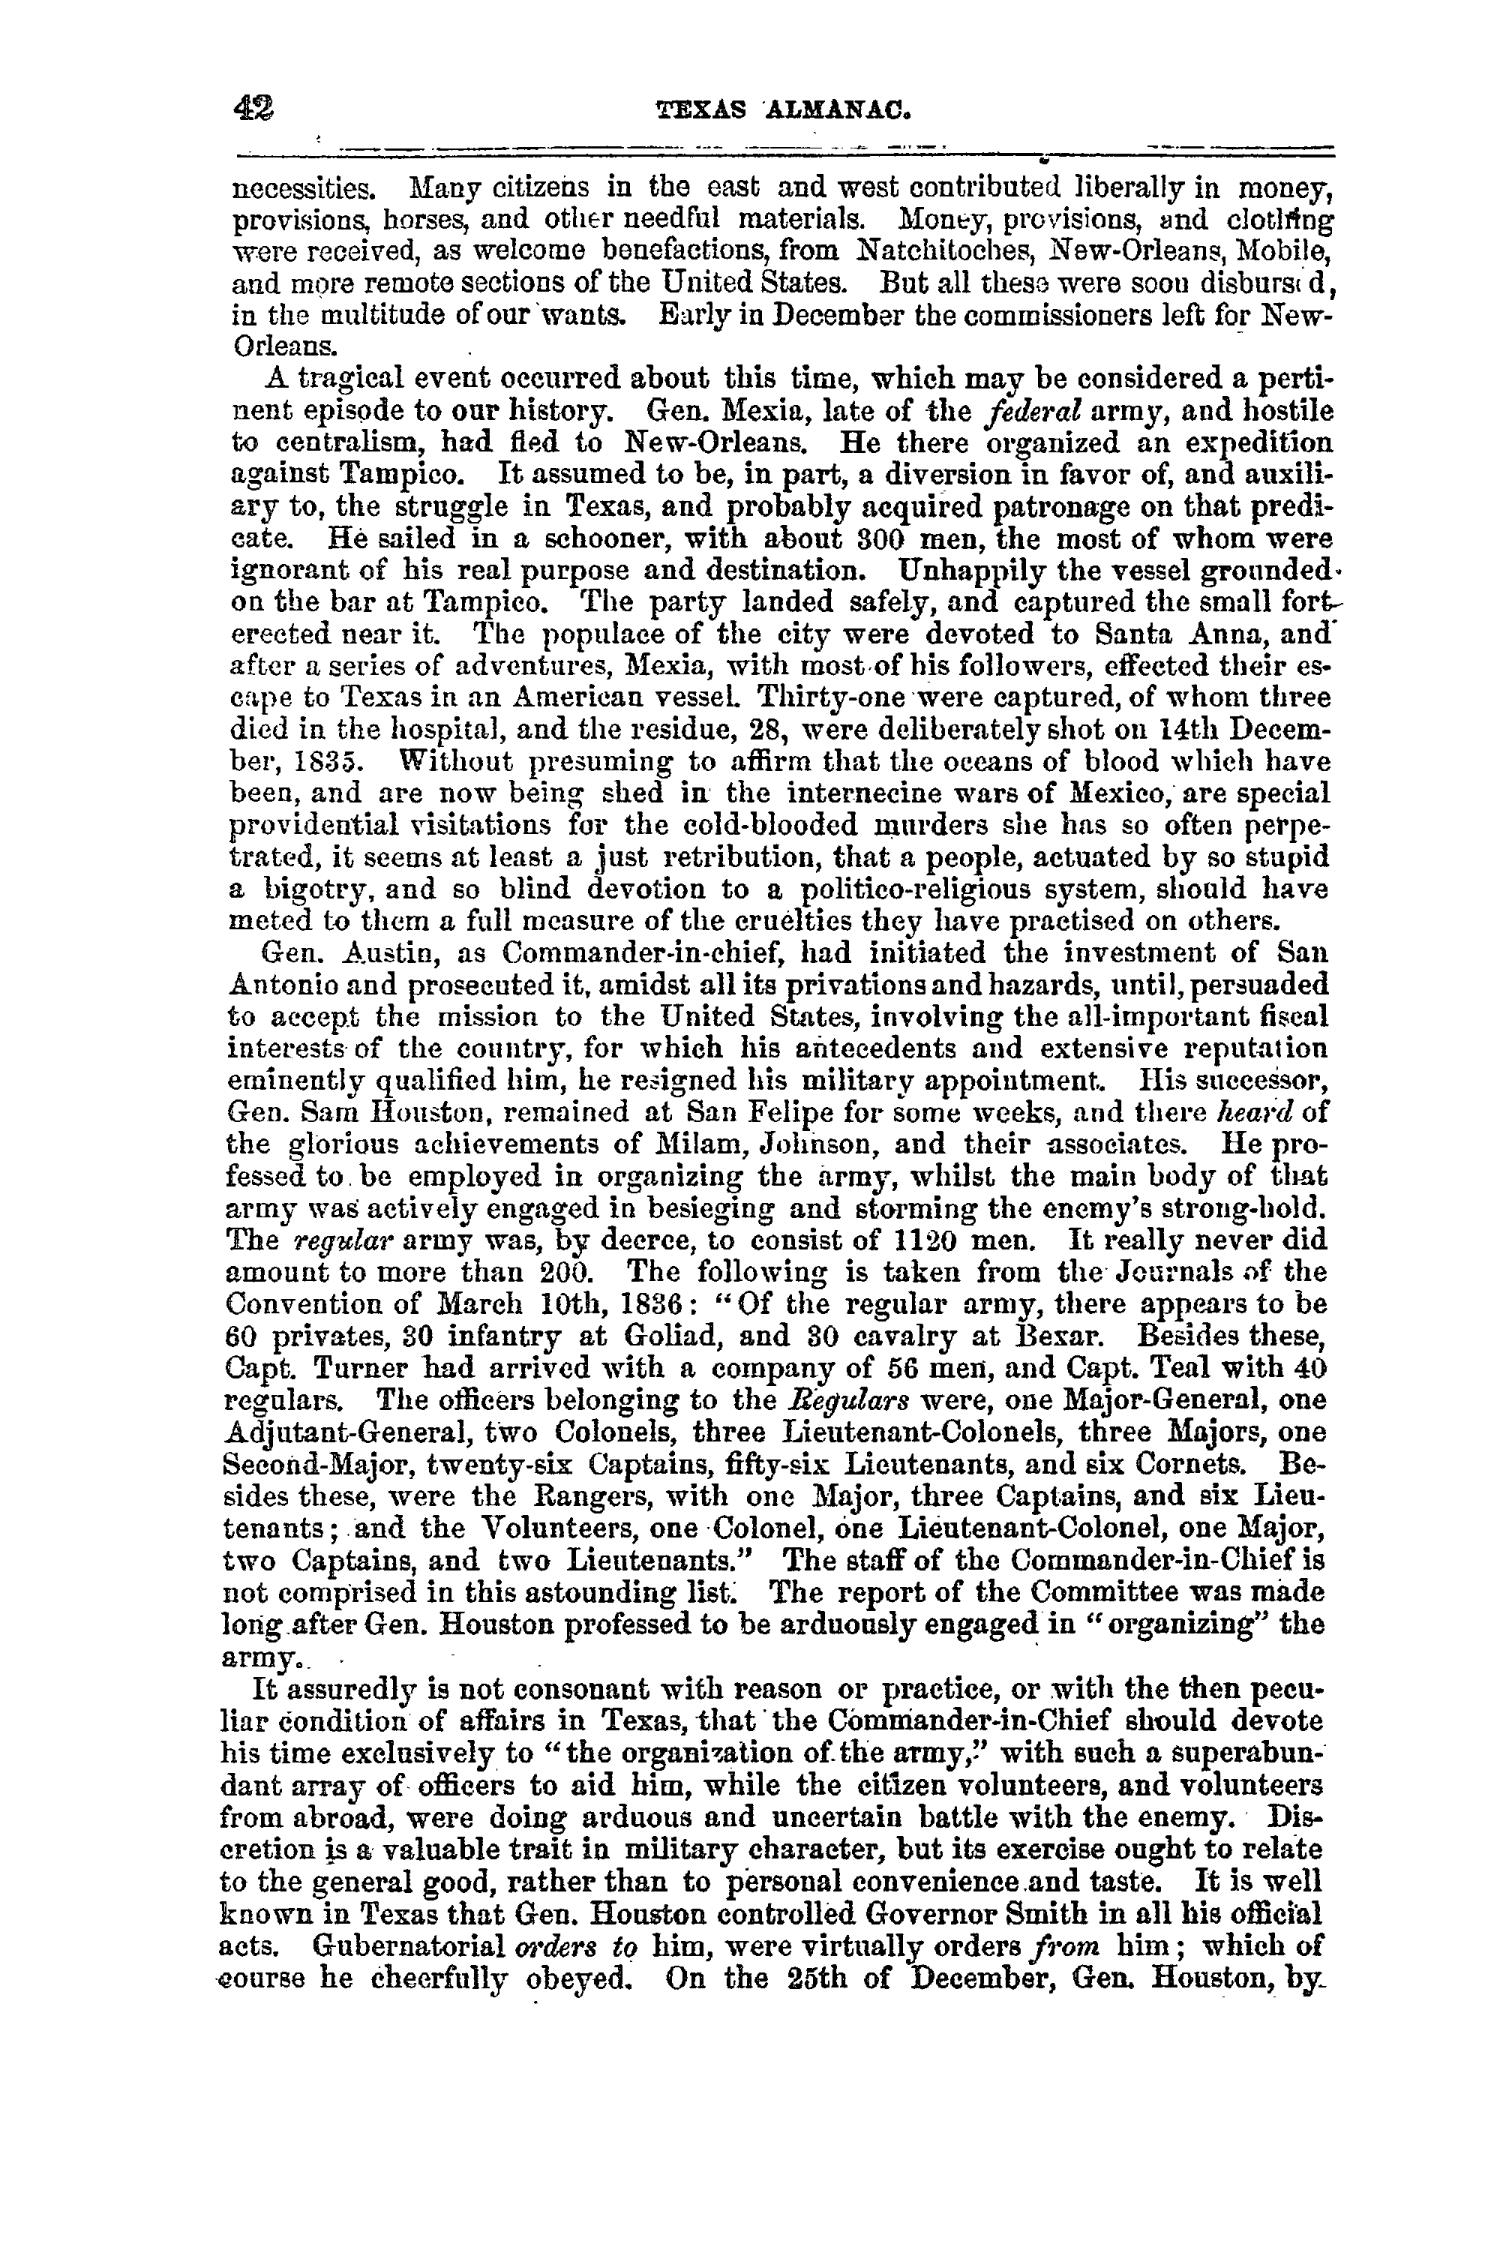 The Texas Almanac, for 1860, with Statistics, Historical and Biographical Sketches, &c., Relating to Texas.                                                                                                      42